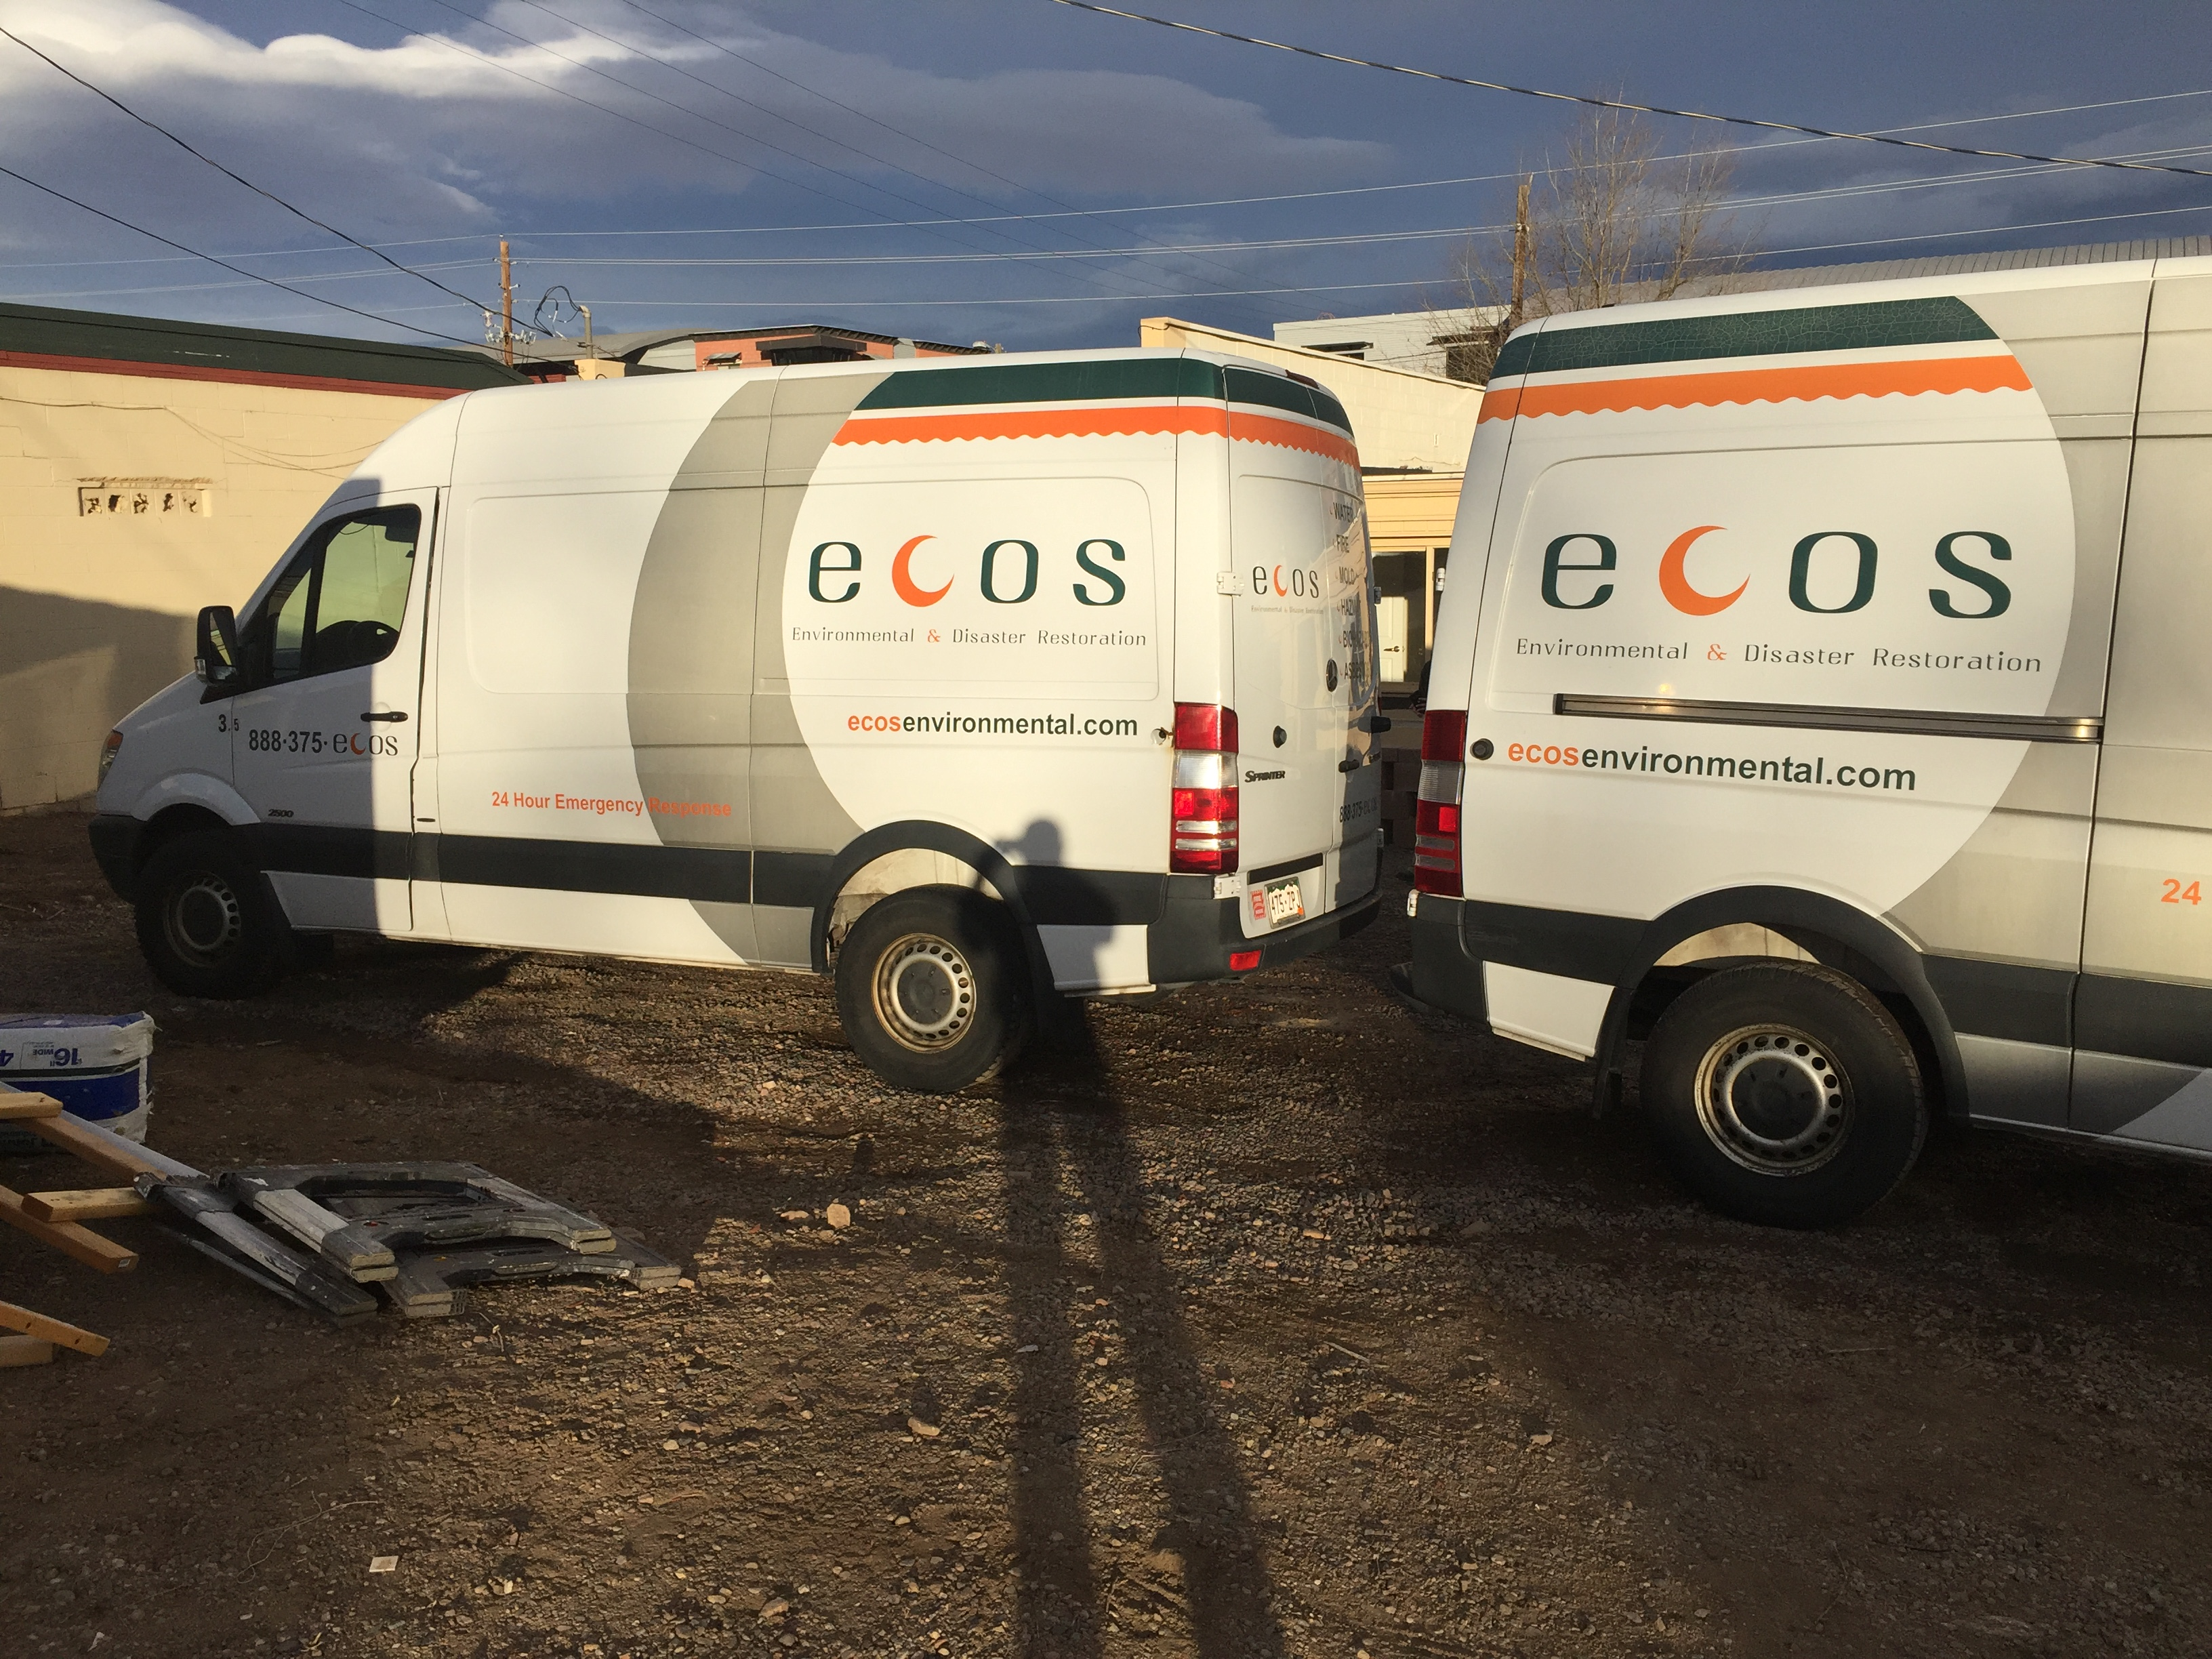 ECOS Environmental & Disaster Restoration, Inc. image 23